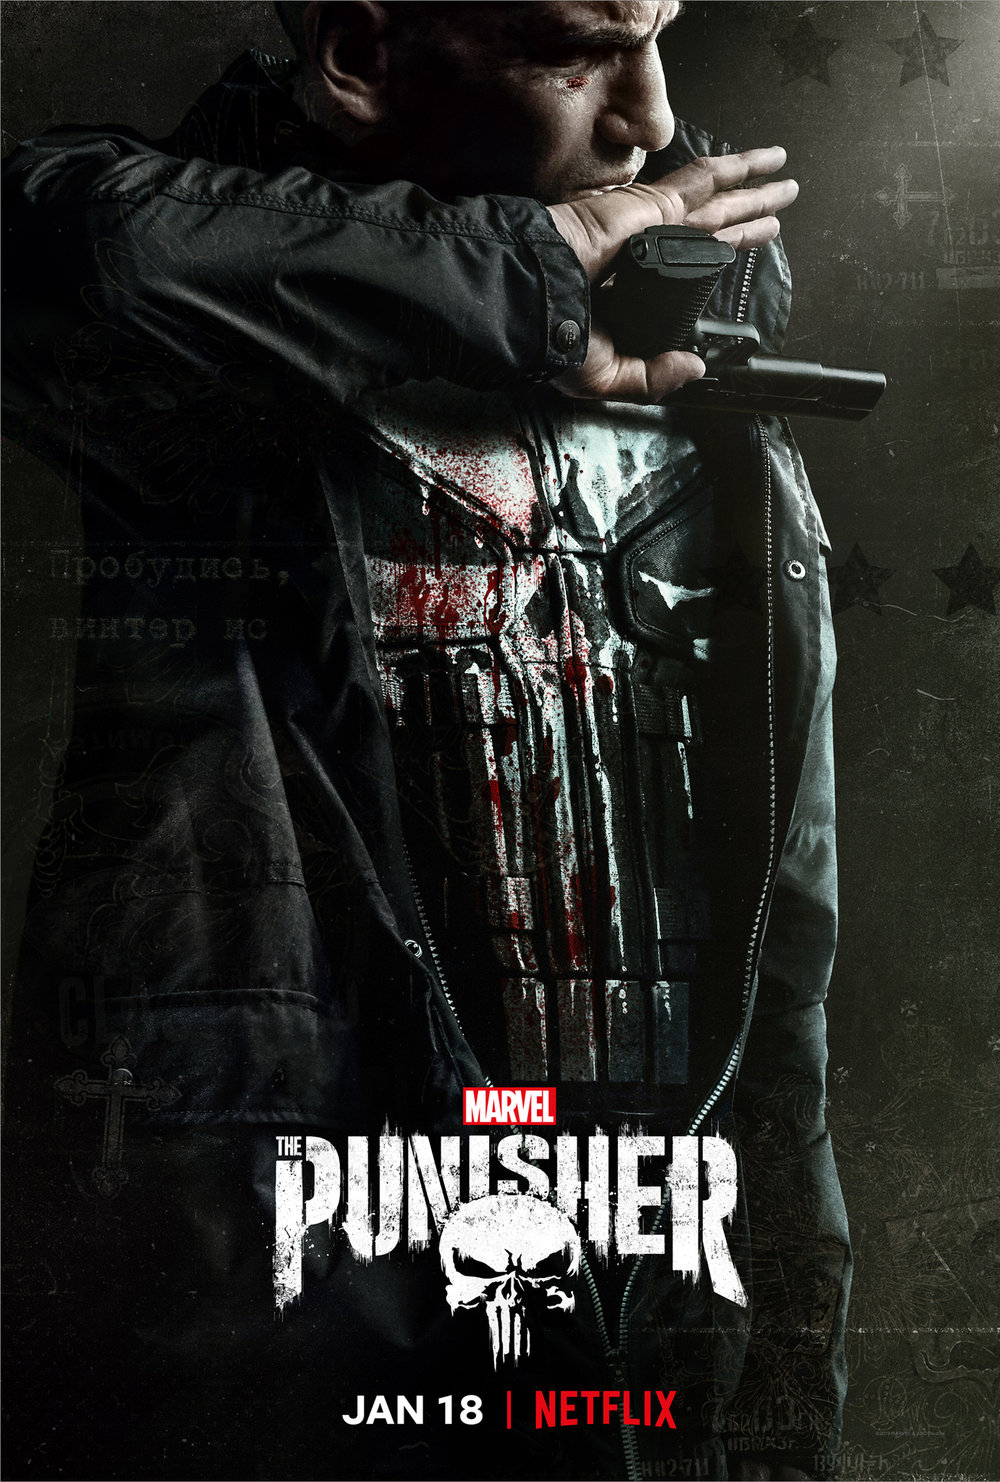 "The Punisher (Netflix Original Series) - The Punisher (Netflix Original Series)By Adam M. WilcoxI don't review a lot of TV series. This will be my first, so I will take a shot at The Punisher! (See what I did there?)I didn't read a ton of comic books as a kid. I mean I had a lot of them. I didn't collect them in sequence. People usually bought them for me, I would read them, and maybe forget about them. When I was 13, I hung out with a pair of twins that were very much into comic books. As a Friday ritual, they would walk to a local candy store that also sold comics, and let me tag along. It was pretty magical. The place smelled of fresh fudge, and the comics would smell like fresh candy also. My mom didn't mind giving me a few bucks for comics, and candy, and she figured I was keeping out of trouble. My only known way to judge a comic book was to look at the art. In the mid 80s I was very much into action movies that stared Sylvester Stallone, Arnold Schwarzenegger, or Chuck Norris. That was the wave of 80s action, big muscles, big guns! The covers of The Punisher comics in the 80s totally reflected this. So I bought The Punisher volume 1. Had a big guy with a bazooka and a machine gun hiding outside of an apartment window wearing black and white spandex, with a giant white skull on his chest, decked out in belts of ammo, knives and grenades. This would be my comic book character I would follow. And that suck for years. I can't say I collected every single issue of Punisher, but I still have a few that I am proud to own. My point of all of this boring nonsense is to tell you that I am an extremely biased Punisher fan. I know a lot about the character, so I have expectations.Movies have not been especially kind to The Punisher. There have been 3 attempts. Funny thing, I don't hate any of them. I like aspects of each, but none of them seem to be complete. 1989's ""The Punisher"", had a wisecracking Dolph Lundgren wearing grease paint which was supposed to pass for whiskers. It had a porno budget, and couldn't even use the iconic skull because of some licensing snafu, and only got the green light because Tim Burton's Batman movie was making furious money at the time. It was also made in during that late 80s early 90s time where all comic book movies had to have some sort of goofy vibe like it was actually mandated by Hollywood to not take comic book characters seriously. Like not ever. 2004's ""The Punisher"" was a very decent attempt, but there were some tonal imbalances and some rather strange choices that kept it from being great. For one, the entire thing takes place in Tampa, rather than New York, but that is pretty minor…but bizarre. John Travolta, as money launderer/gangster villain was a poor choice by design. Also there are times when the movie switches from dark and dramatic to comedy slapstick so often, that it becomes exhausting by the third act. Tom Jane did a fantastic job in the role, but he seemed to be the only one in the movie that was committed to his role. The second act involves a series of goofy characters, and cartoonish attacks from assassins who's names and costumes are too comic bookish for even the die hard of comic book fans. It's still worth a look, and if you can manage to find a copy of the DVD only extended cut, which features a ton of scenes that were cut, and an opening sequence that was animated, it's pretty awesome. 2008's Punisher War Zone which is sort of a sequel/soft reboots starring Ray Stevenson in the title role, and Dominick West as Jigsaw. Now the opening of War Zone looks and feels like it was ripped right out of The Punisher Max series made popular by Garth Ennis and Tim Bradstreet. The second and third acts are where I have some serious problems with this movie. As much as I LOVE Dominick West in The Wire, and The 300, here he is playing Jigsaw with cringe inducing camp that feels like it belongs in a Tim Burton movie. Doug Hutchison as Loony Bin Jim ruins every scene he is in. The movie is violent, and rated R, but the goofy tone is even worse than the last Punisher movie.So when Jon Bernthal was announced he would be playing The Punisher in the insanely popular Daredevil series on Netflix, I was very excited. I loved his role on the Walking Dead. He instantly became a fan favorite, and as I expected he stole every seen. In fact he nailed the character so well, that you could say he exceeded my expectations.So now…if you are looking for The Punisher…AKA Frank Castle, to not be played like a goofy Tim Burton movie, then Netflix's Punisher series is worth checking out. There is no goofy Burton stuff going on in this series. Bernthal's Punisher is very much a combat veteran whose only source of stability is coming home to his family. See, killing does not seem to bother Frank Castle. He is good at it. Good at his job. What separates him from being a monster is his wife and kids. Now when Castle's family is gunned down in front of him, and he is left for dead….only to survive and somehow come back, Frank decides to take the fight to the enemy with literally nothing or no one to stop him from completing his mission.The only problem I have with this series is pacing. There is a great story, that I feel could be summed up in fewer episodes. There are many characters that are boring, or just dull because of sub par acting. Two in particular is antagonist Billy Russo played by Ben Barnes, and Dinah Madani played by Amber Rose Rivah. I do with a lot less from these two, but both seasons of Punisher will bore you to death with these characters, and that is unfortunate. What I really want is to see more Frank. There are other interesting characters along the way. David Lieberman/Micro was played by Even Moss Bacharach. An analyst that has seen some things he shouldn't, and is now on the run becomes a reluctant ally to Frank. Curtis Hoyle (Jason R. Moore), amputee, veteran counselor and pretty much only living friend left to Frank. There is also one interesting villain in Season 2. John Pilgrim, a former white supremacist turned Christian zealot, makes for a compelling villain, but he seems to take a back seat to another character who I don't want to reveal because of possible spoilers. Giorgia Whigham's character Amy is annoying as hell, and even though she ultimately won me over in the end, I could have used less of her in the series. Also I feel like season 2 would have been better at 10 episodes rather than 13. That is the main problem of The Punisher series. The action is absolutely FANTASTIC but then it slows down again, and crawls so slowly that at times it feels like time is going so slow it might be actually going backwards. I also have a minor gripe: actors, and actresses…I am not a professional actor, but I studied enough drama in high school to know that if you are going to use a coffee cup prop, at least pretend like it has hot coffee in it. If you are going to talk with your hands and make insane gestures with that coffee cup in your hands not even five seconds after taking the cup from a barista, you are telling your audience that the cup is empty, because if it was full, coffee would probably spill out on your hands and it would burn, just saying.Otherwise the story is actually pretty good in the first season. Not quite as good in the second season, but not bad either. The interesting thing about the show is how in spite of multiple murders, Frank seems to wind up the anti-hero who has multiple people defending and protecting him from various forms of law enforcement. Bernthal has an animalistic approach to this role. When enraged, he can be just as affective with a sharp stick and rock, or his bare fists, as he is with a Heckler and Koch G36C.Sadly, there will no longer be anymore Punisher shows on Netflix due the Disney licensing fiasco, but I honestly think that Bernthal has more than deserved a fair shot at a movie attempt with a budget that doesn't play up the goofy Tim Burton cartoon aspect of comic book movies. This series despite all of its flaws has earned the respect of veterans and comic book fans. That alone might be just enough to sell it to a wider audience, just please don't make it PG-13. The Punisher wins four out of five cheese curds from yours truly."